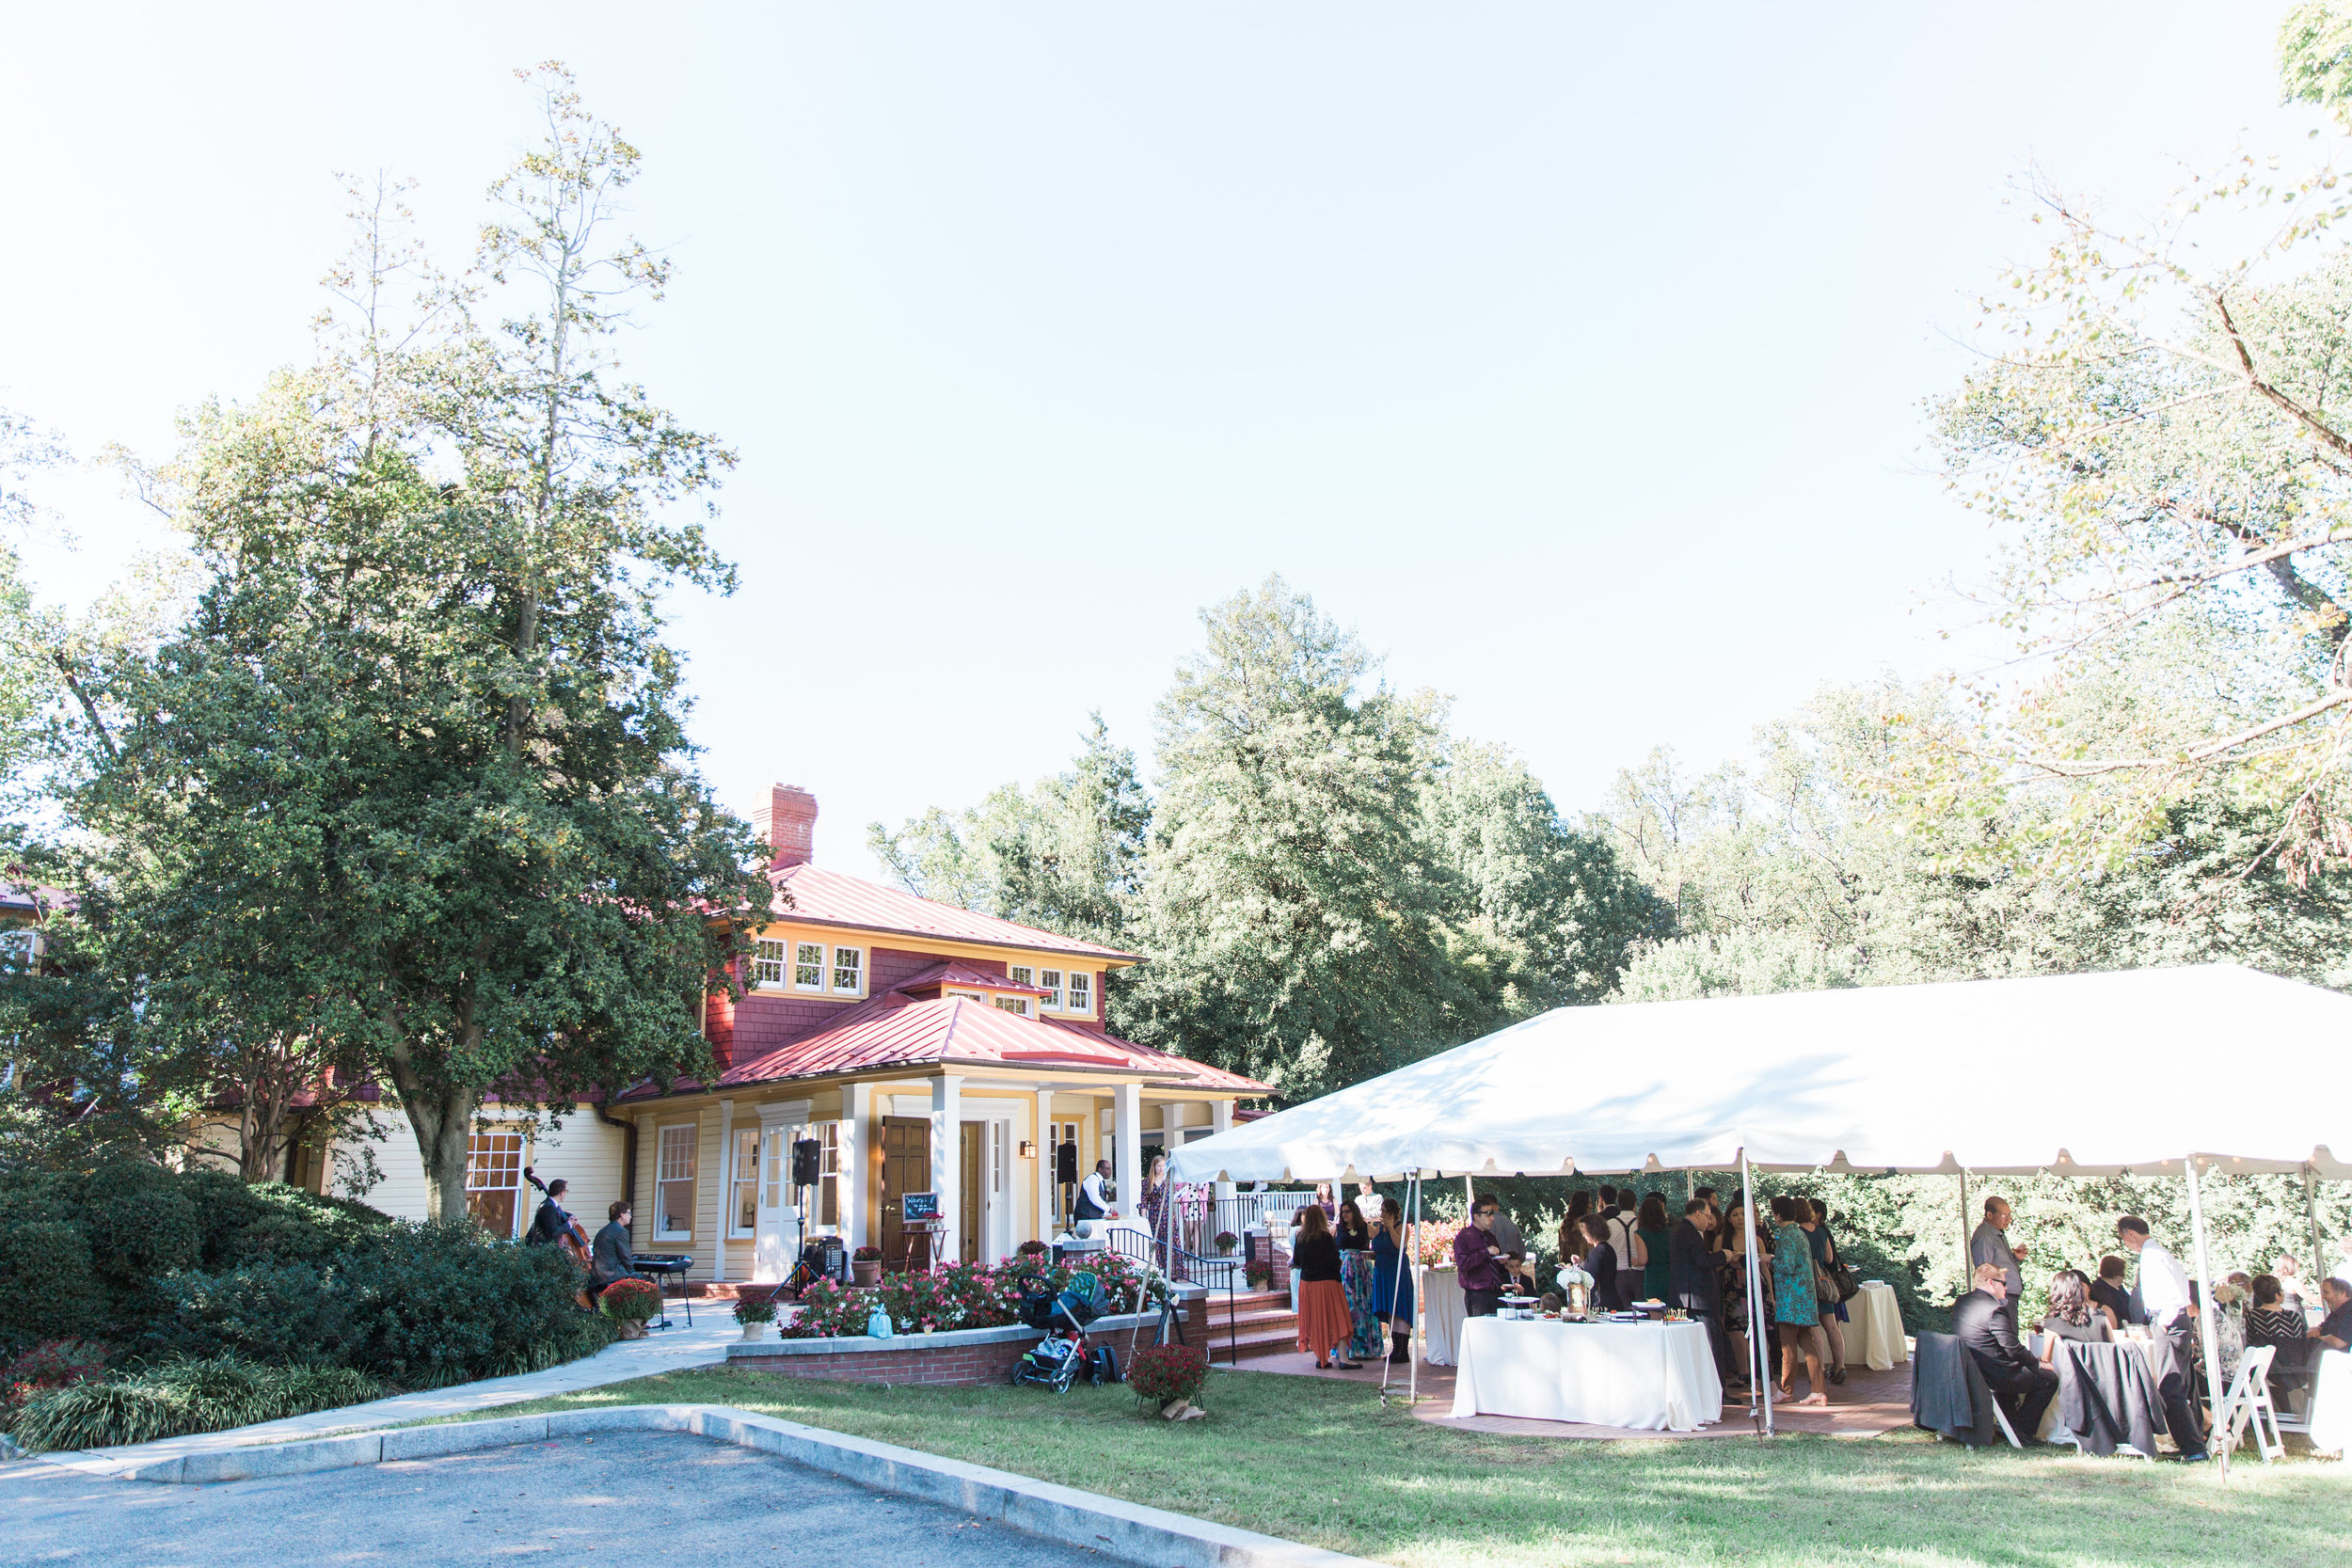 Rustic Outdoor Fall Arlington Virginia Hendry House Wedding with East Made Event Company Baltimore Maryland Washington DC Wedding Planner and ksant photography Richmond Virginia Wedding Photographer 38.jpg